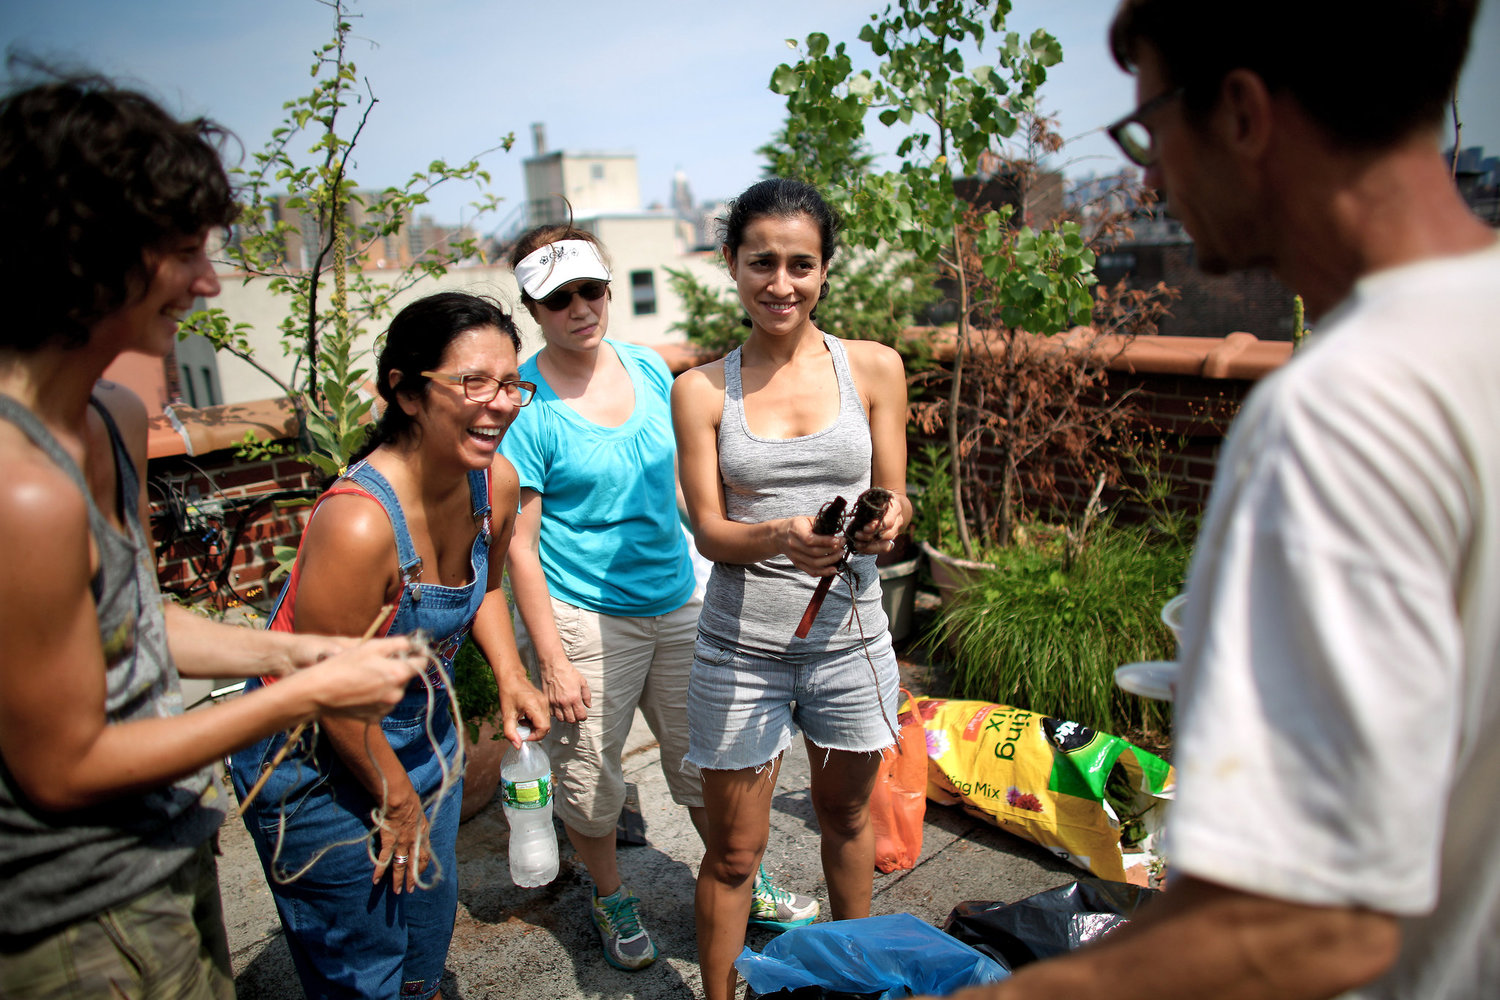 On a recent Sunday, residents gathered for a garden work day on the roof of Umbrella House, where they tended to plants and tidied up.